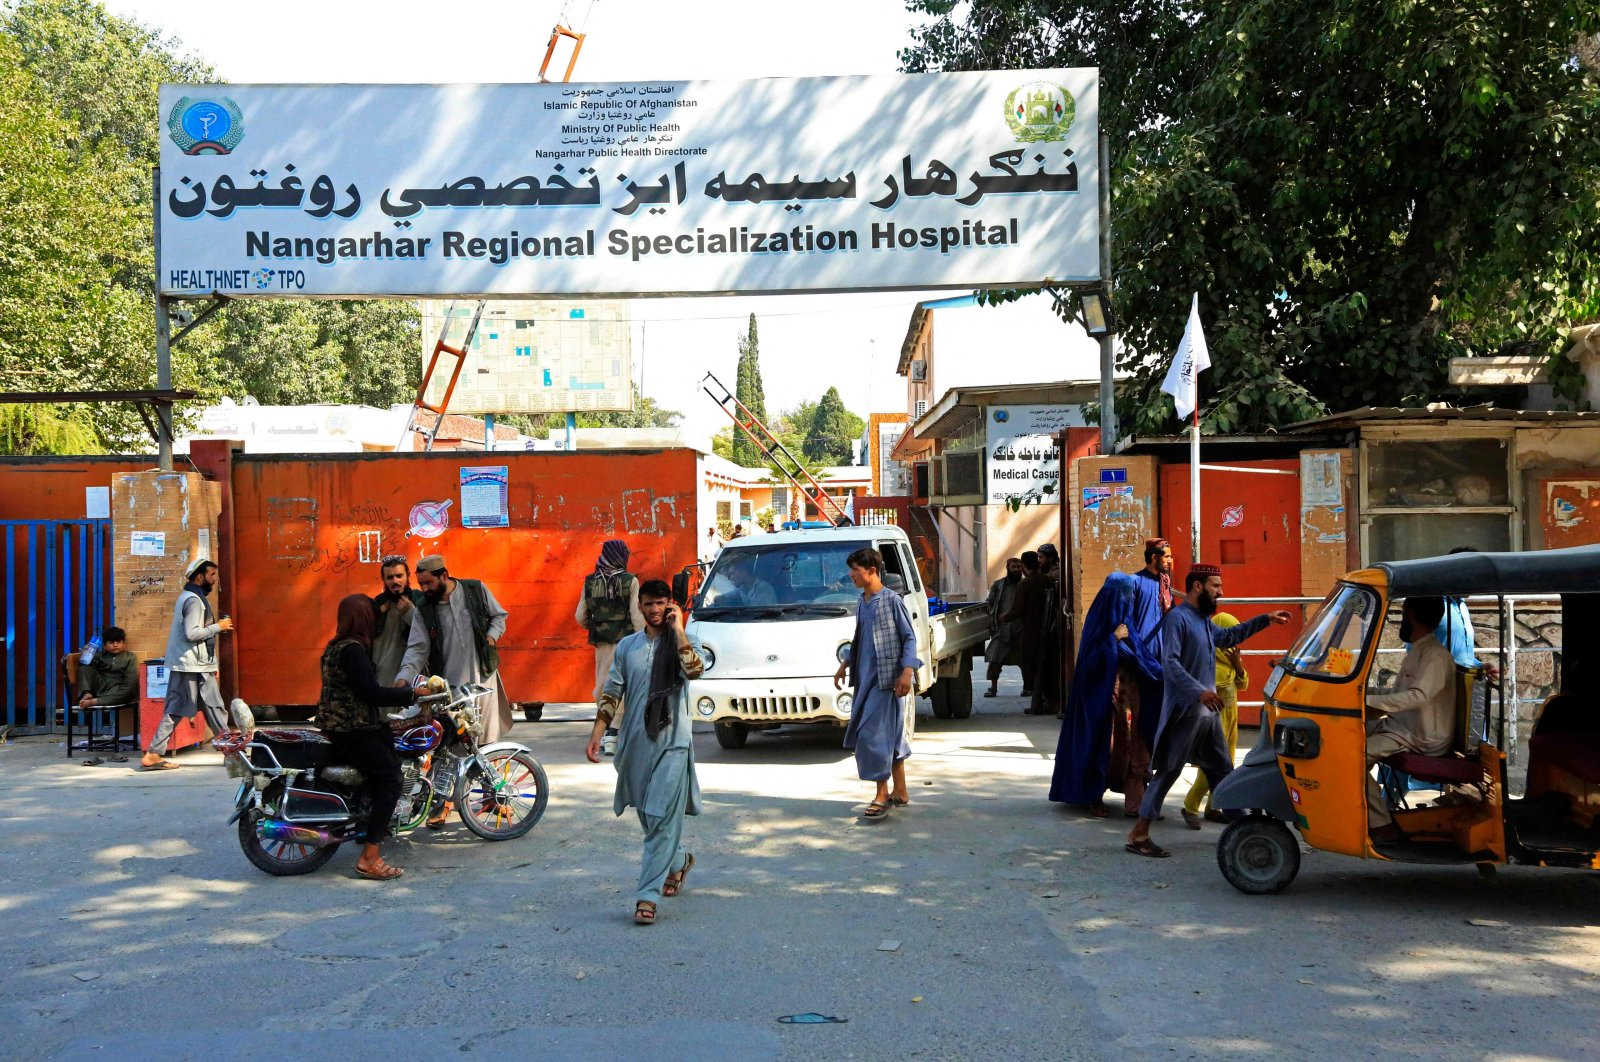 People stand outside the Nangarhar Regional Specialization Hospital after explosions in Jalalabad, Afghanistan, Sept. 18, 2021. (AFP Photo)